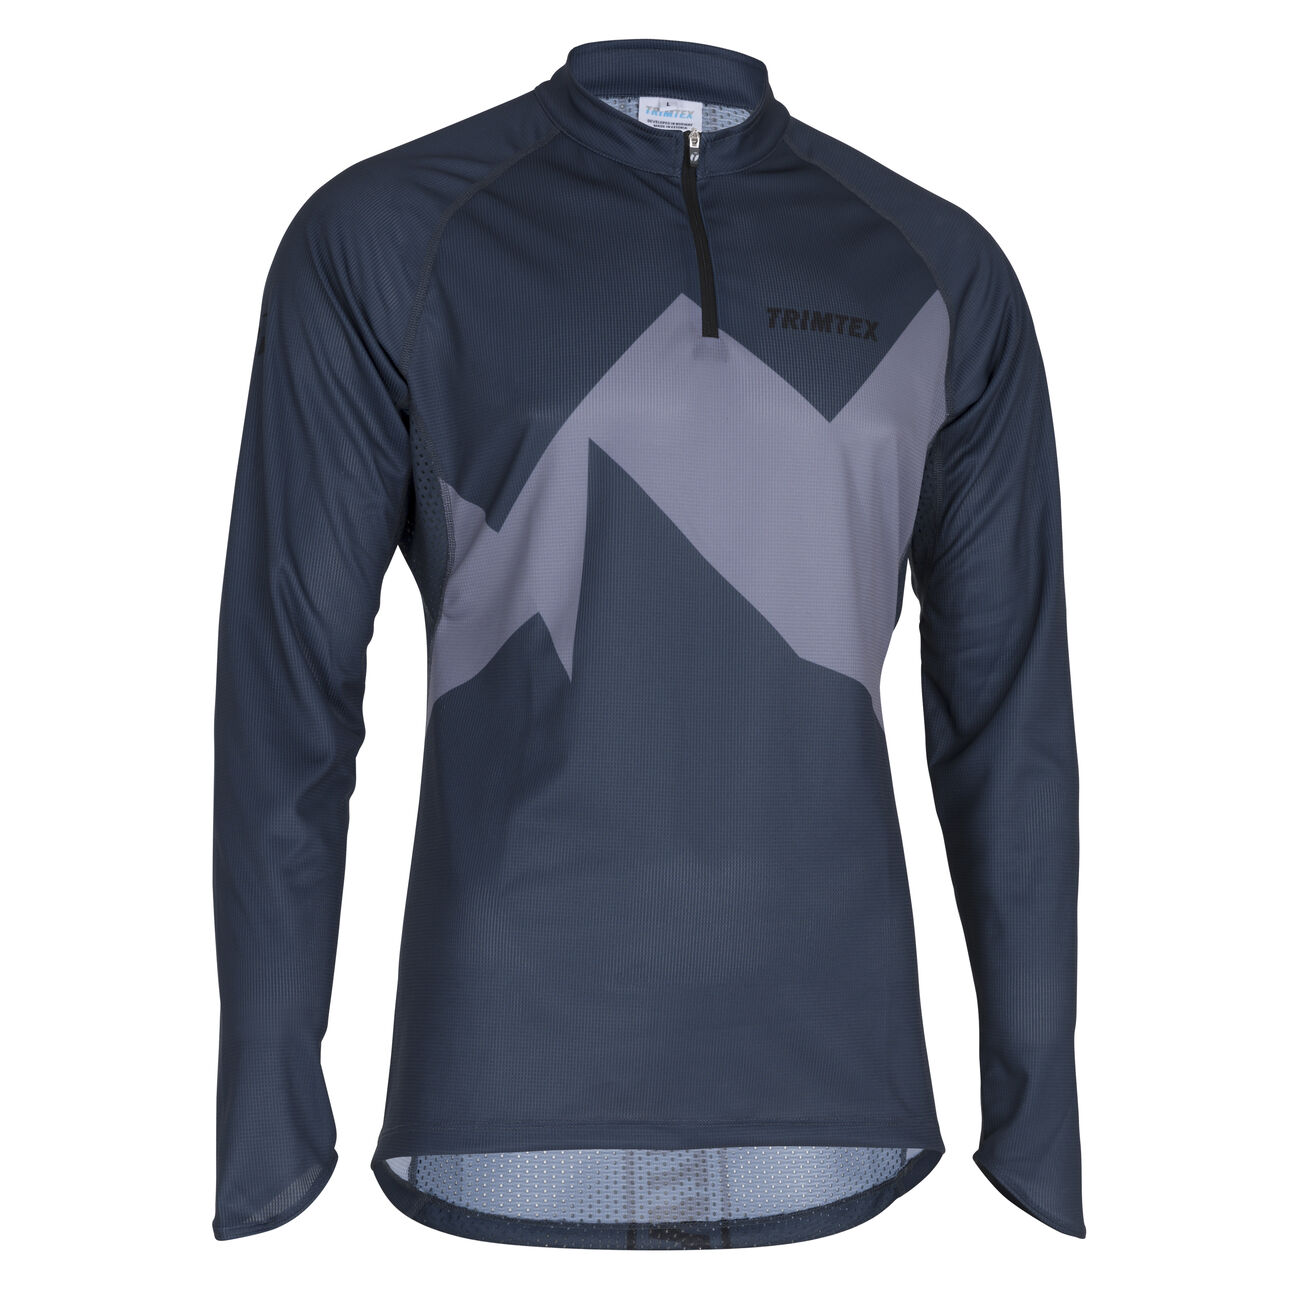 Rapid 2.0 orienteering LS shirt men's